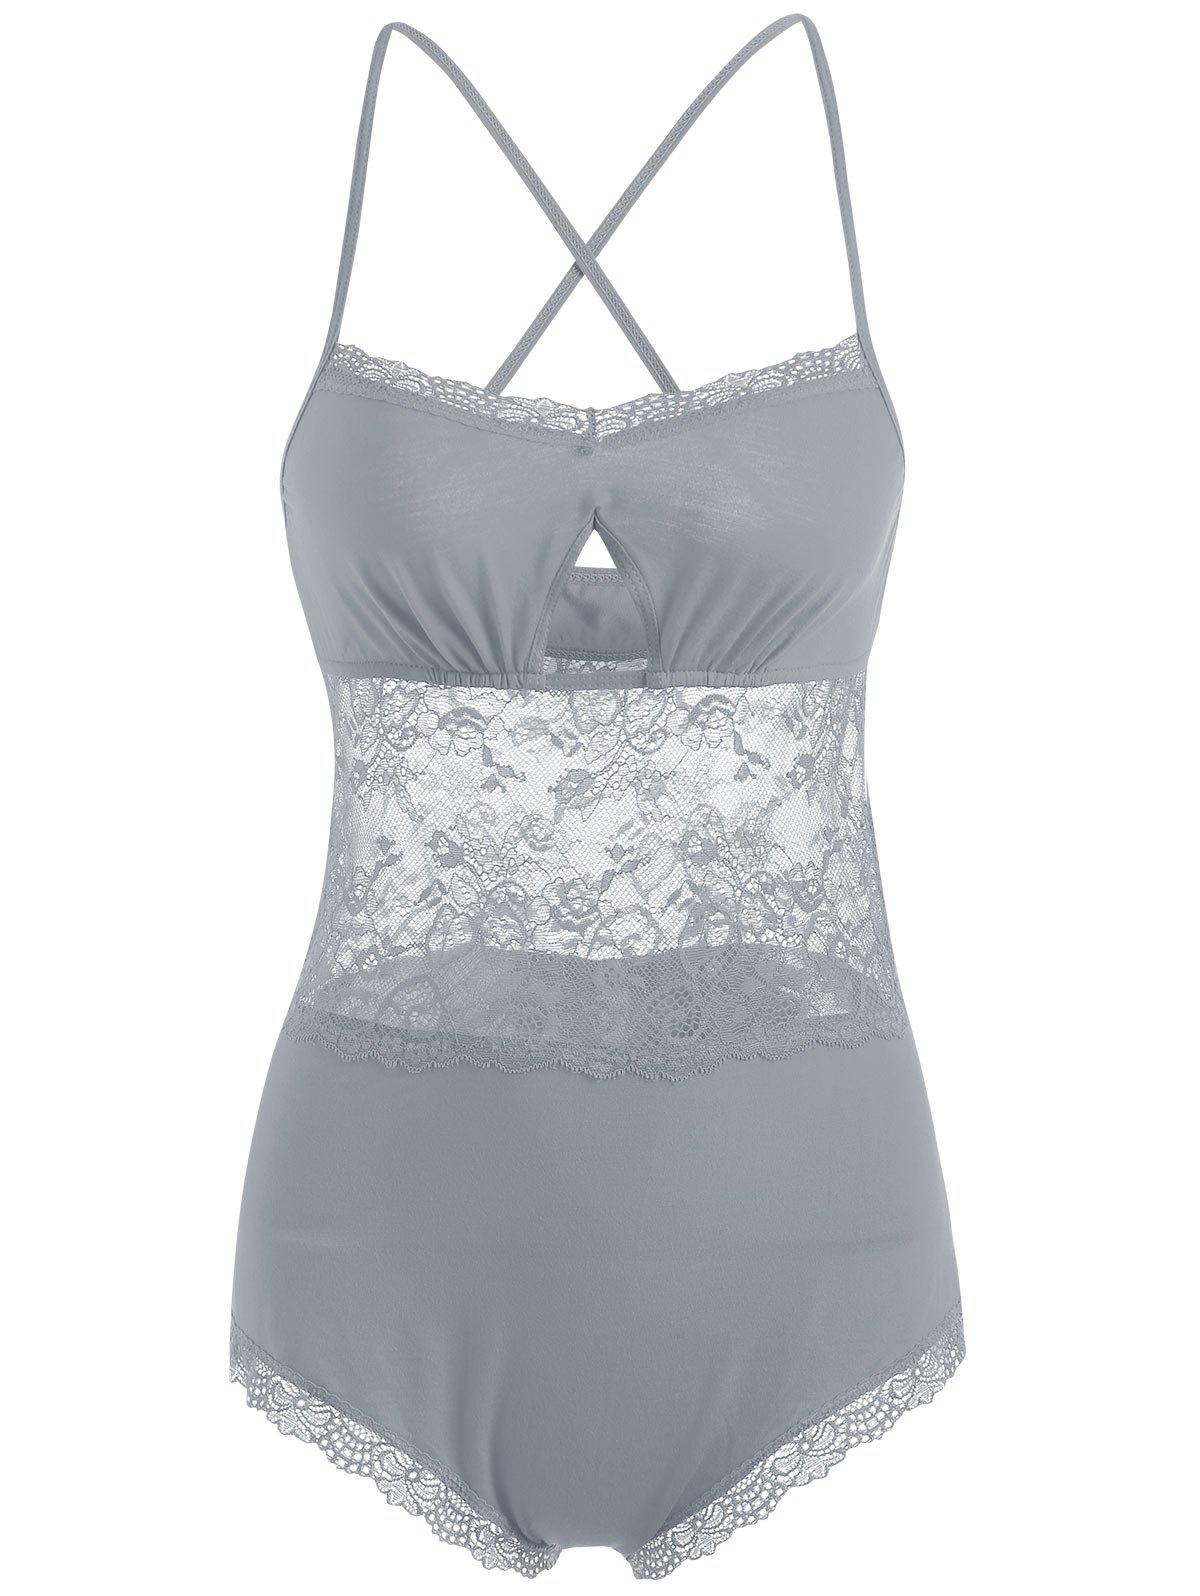 Lace Criss Cross Sheer Slip Teddy - GRAY M